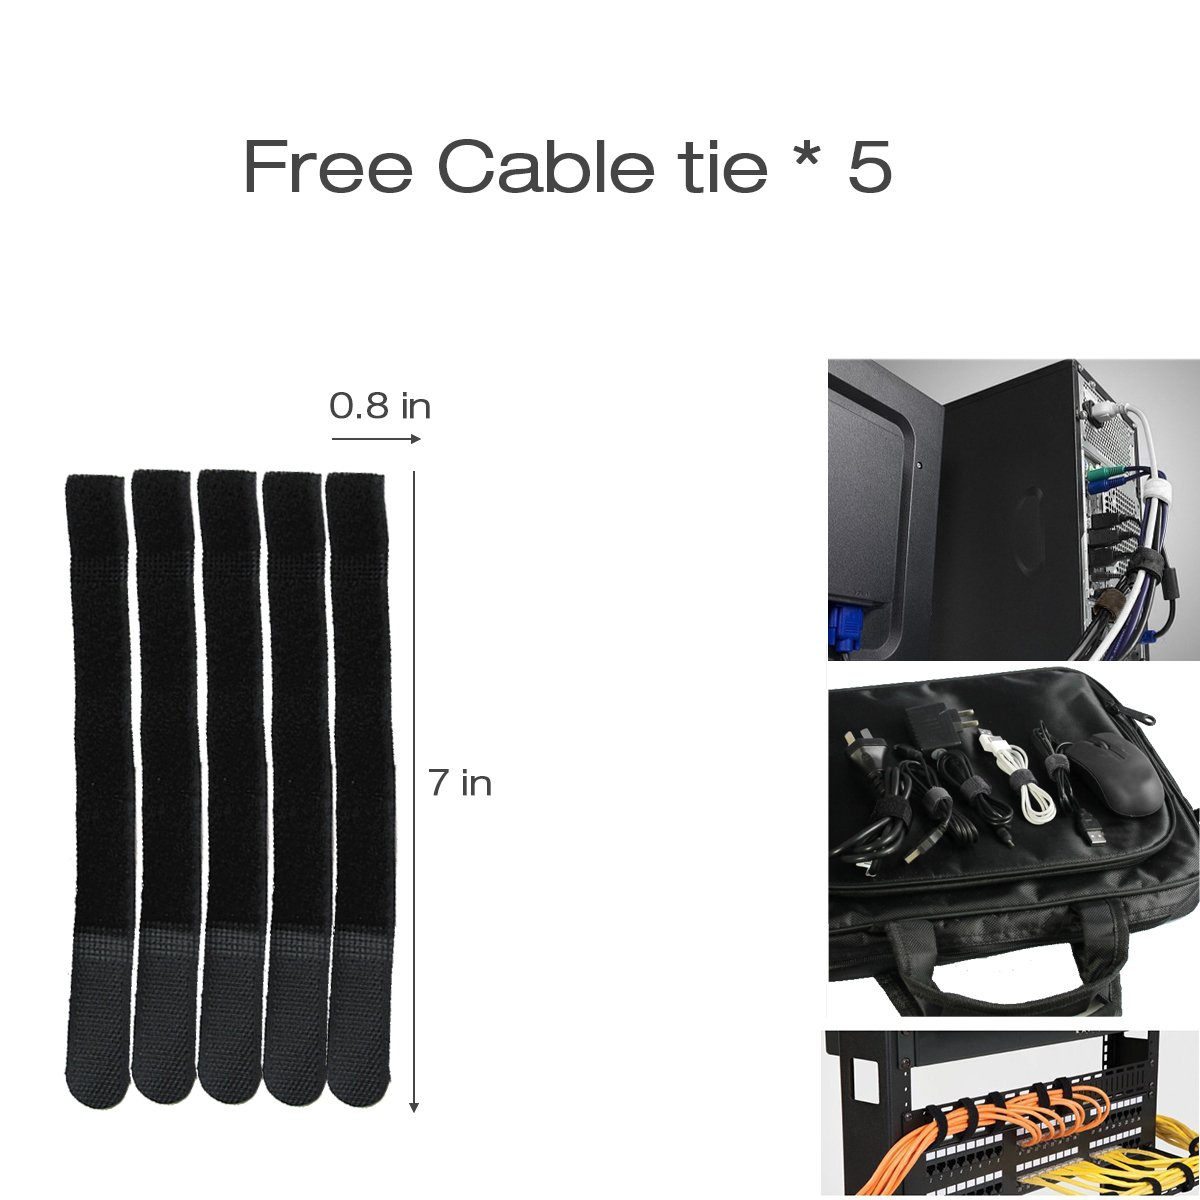 Lancher 19 Inch 1U Cable management Horizontal Cable Rack Mount manager with mounting screws for service rack cabinet 24 slot Finger Duct with Cover by Lancher (Image #6)